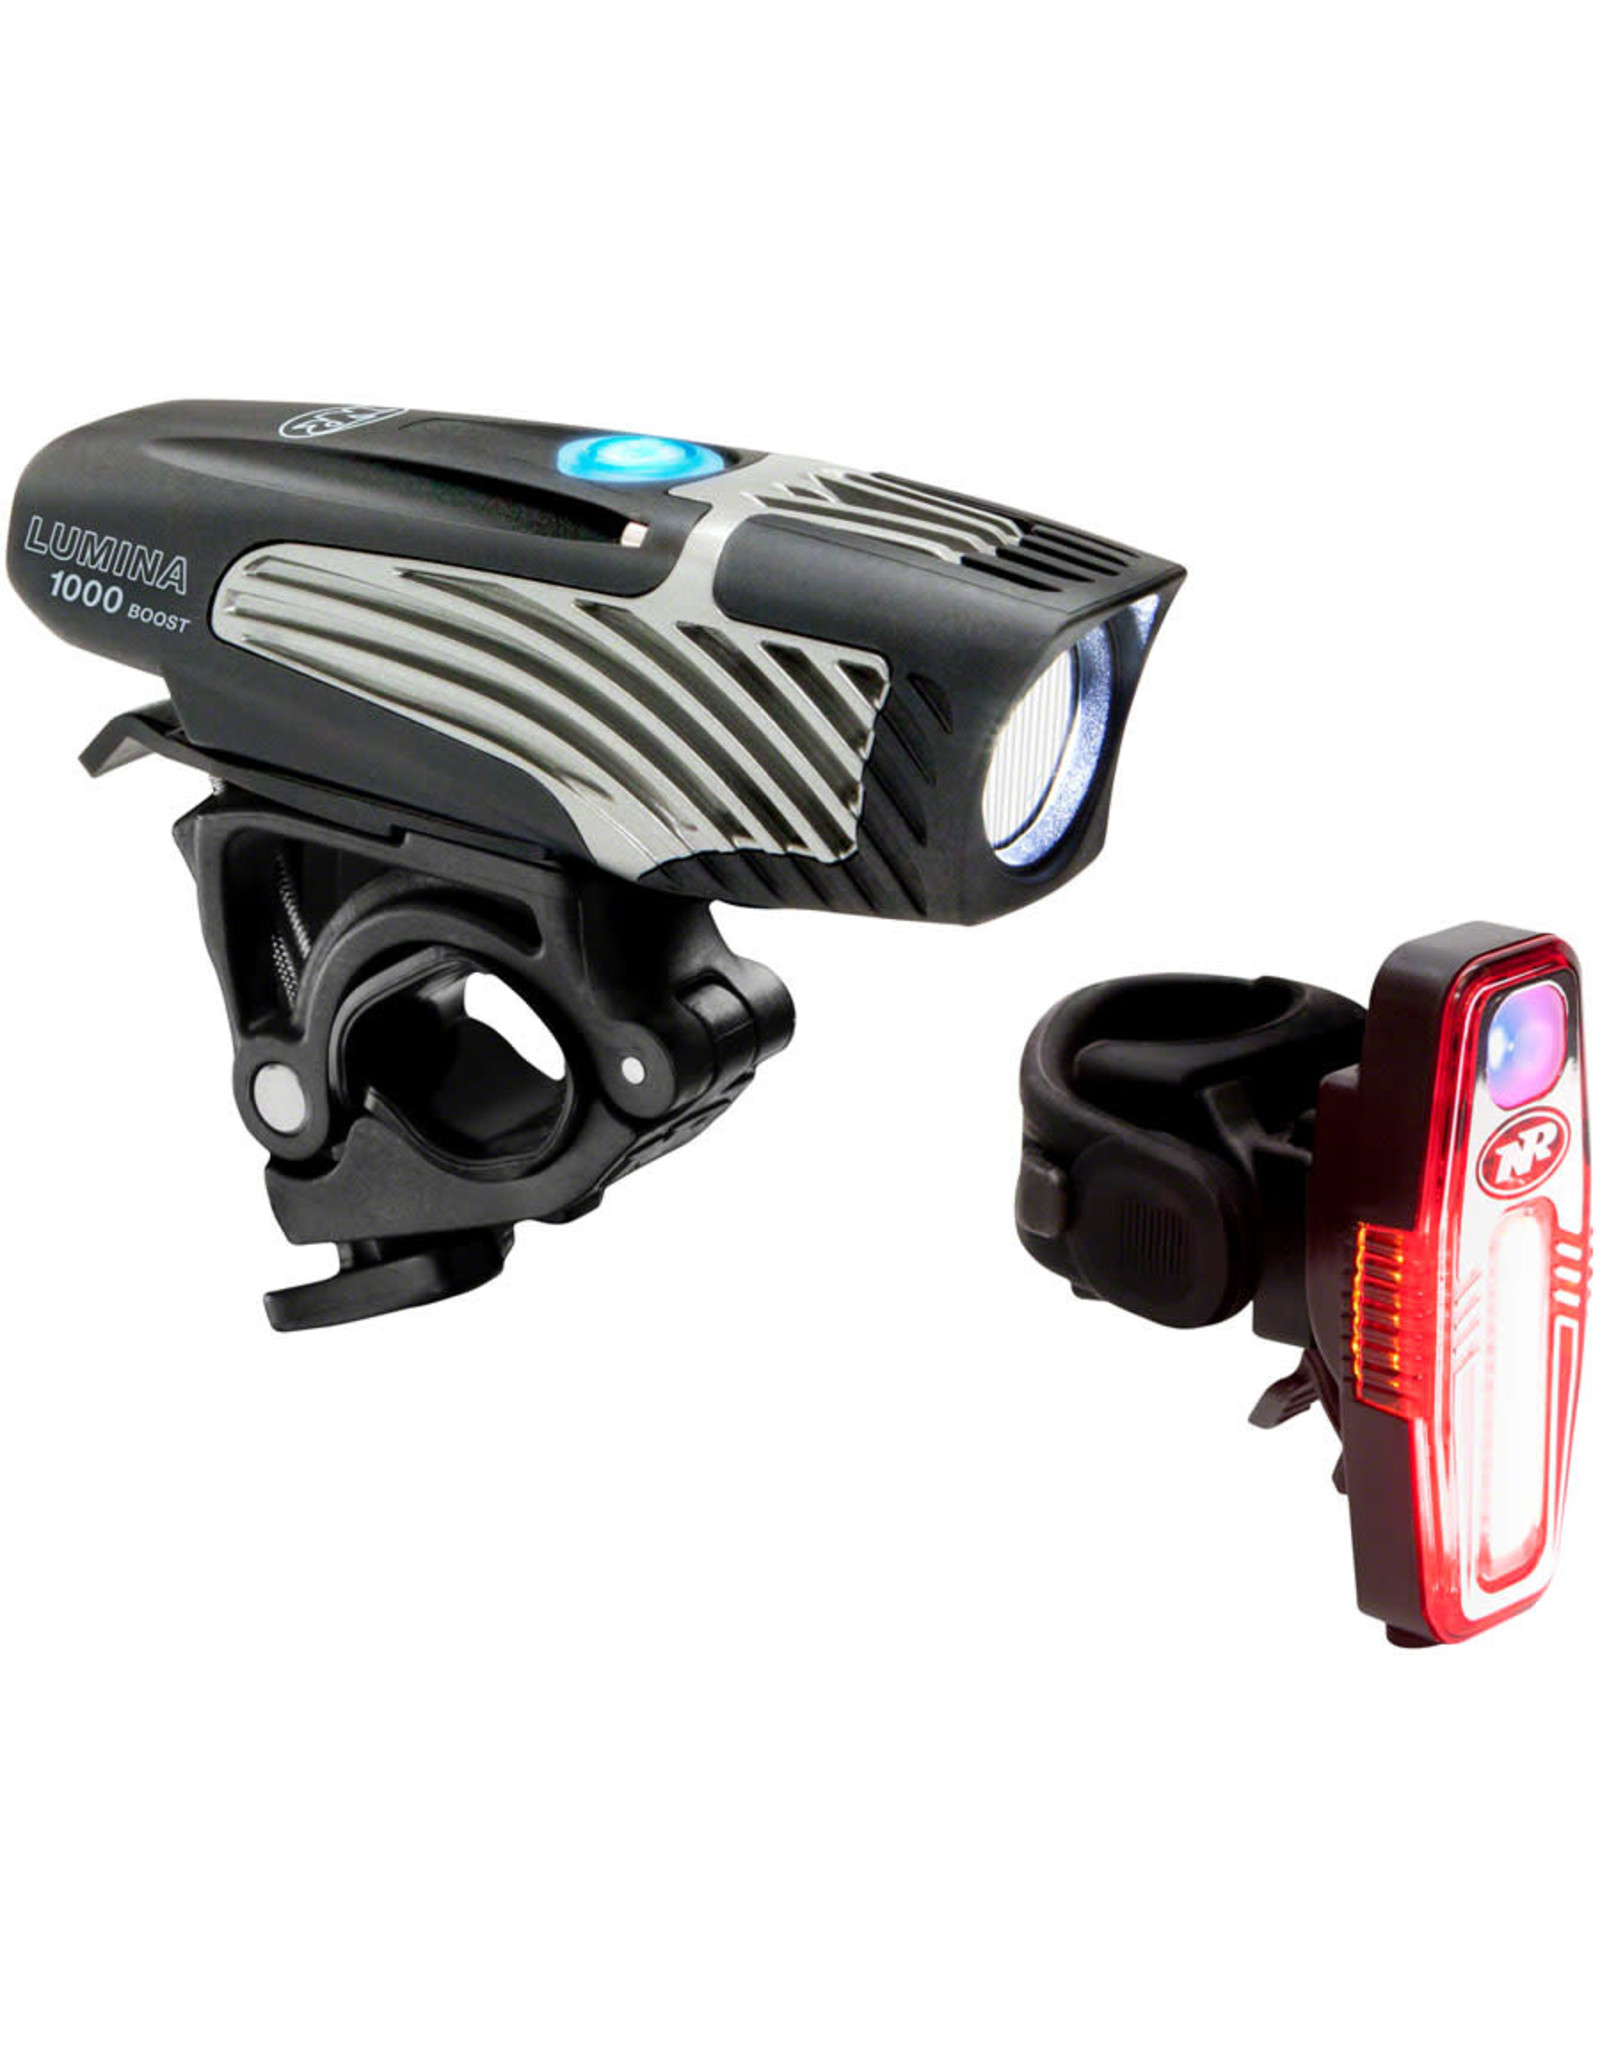 NiteRider NiteRider Lumina 1000 Boost and Sabre 110 Headlight and Taillight Set